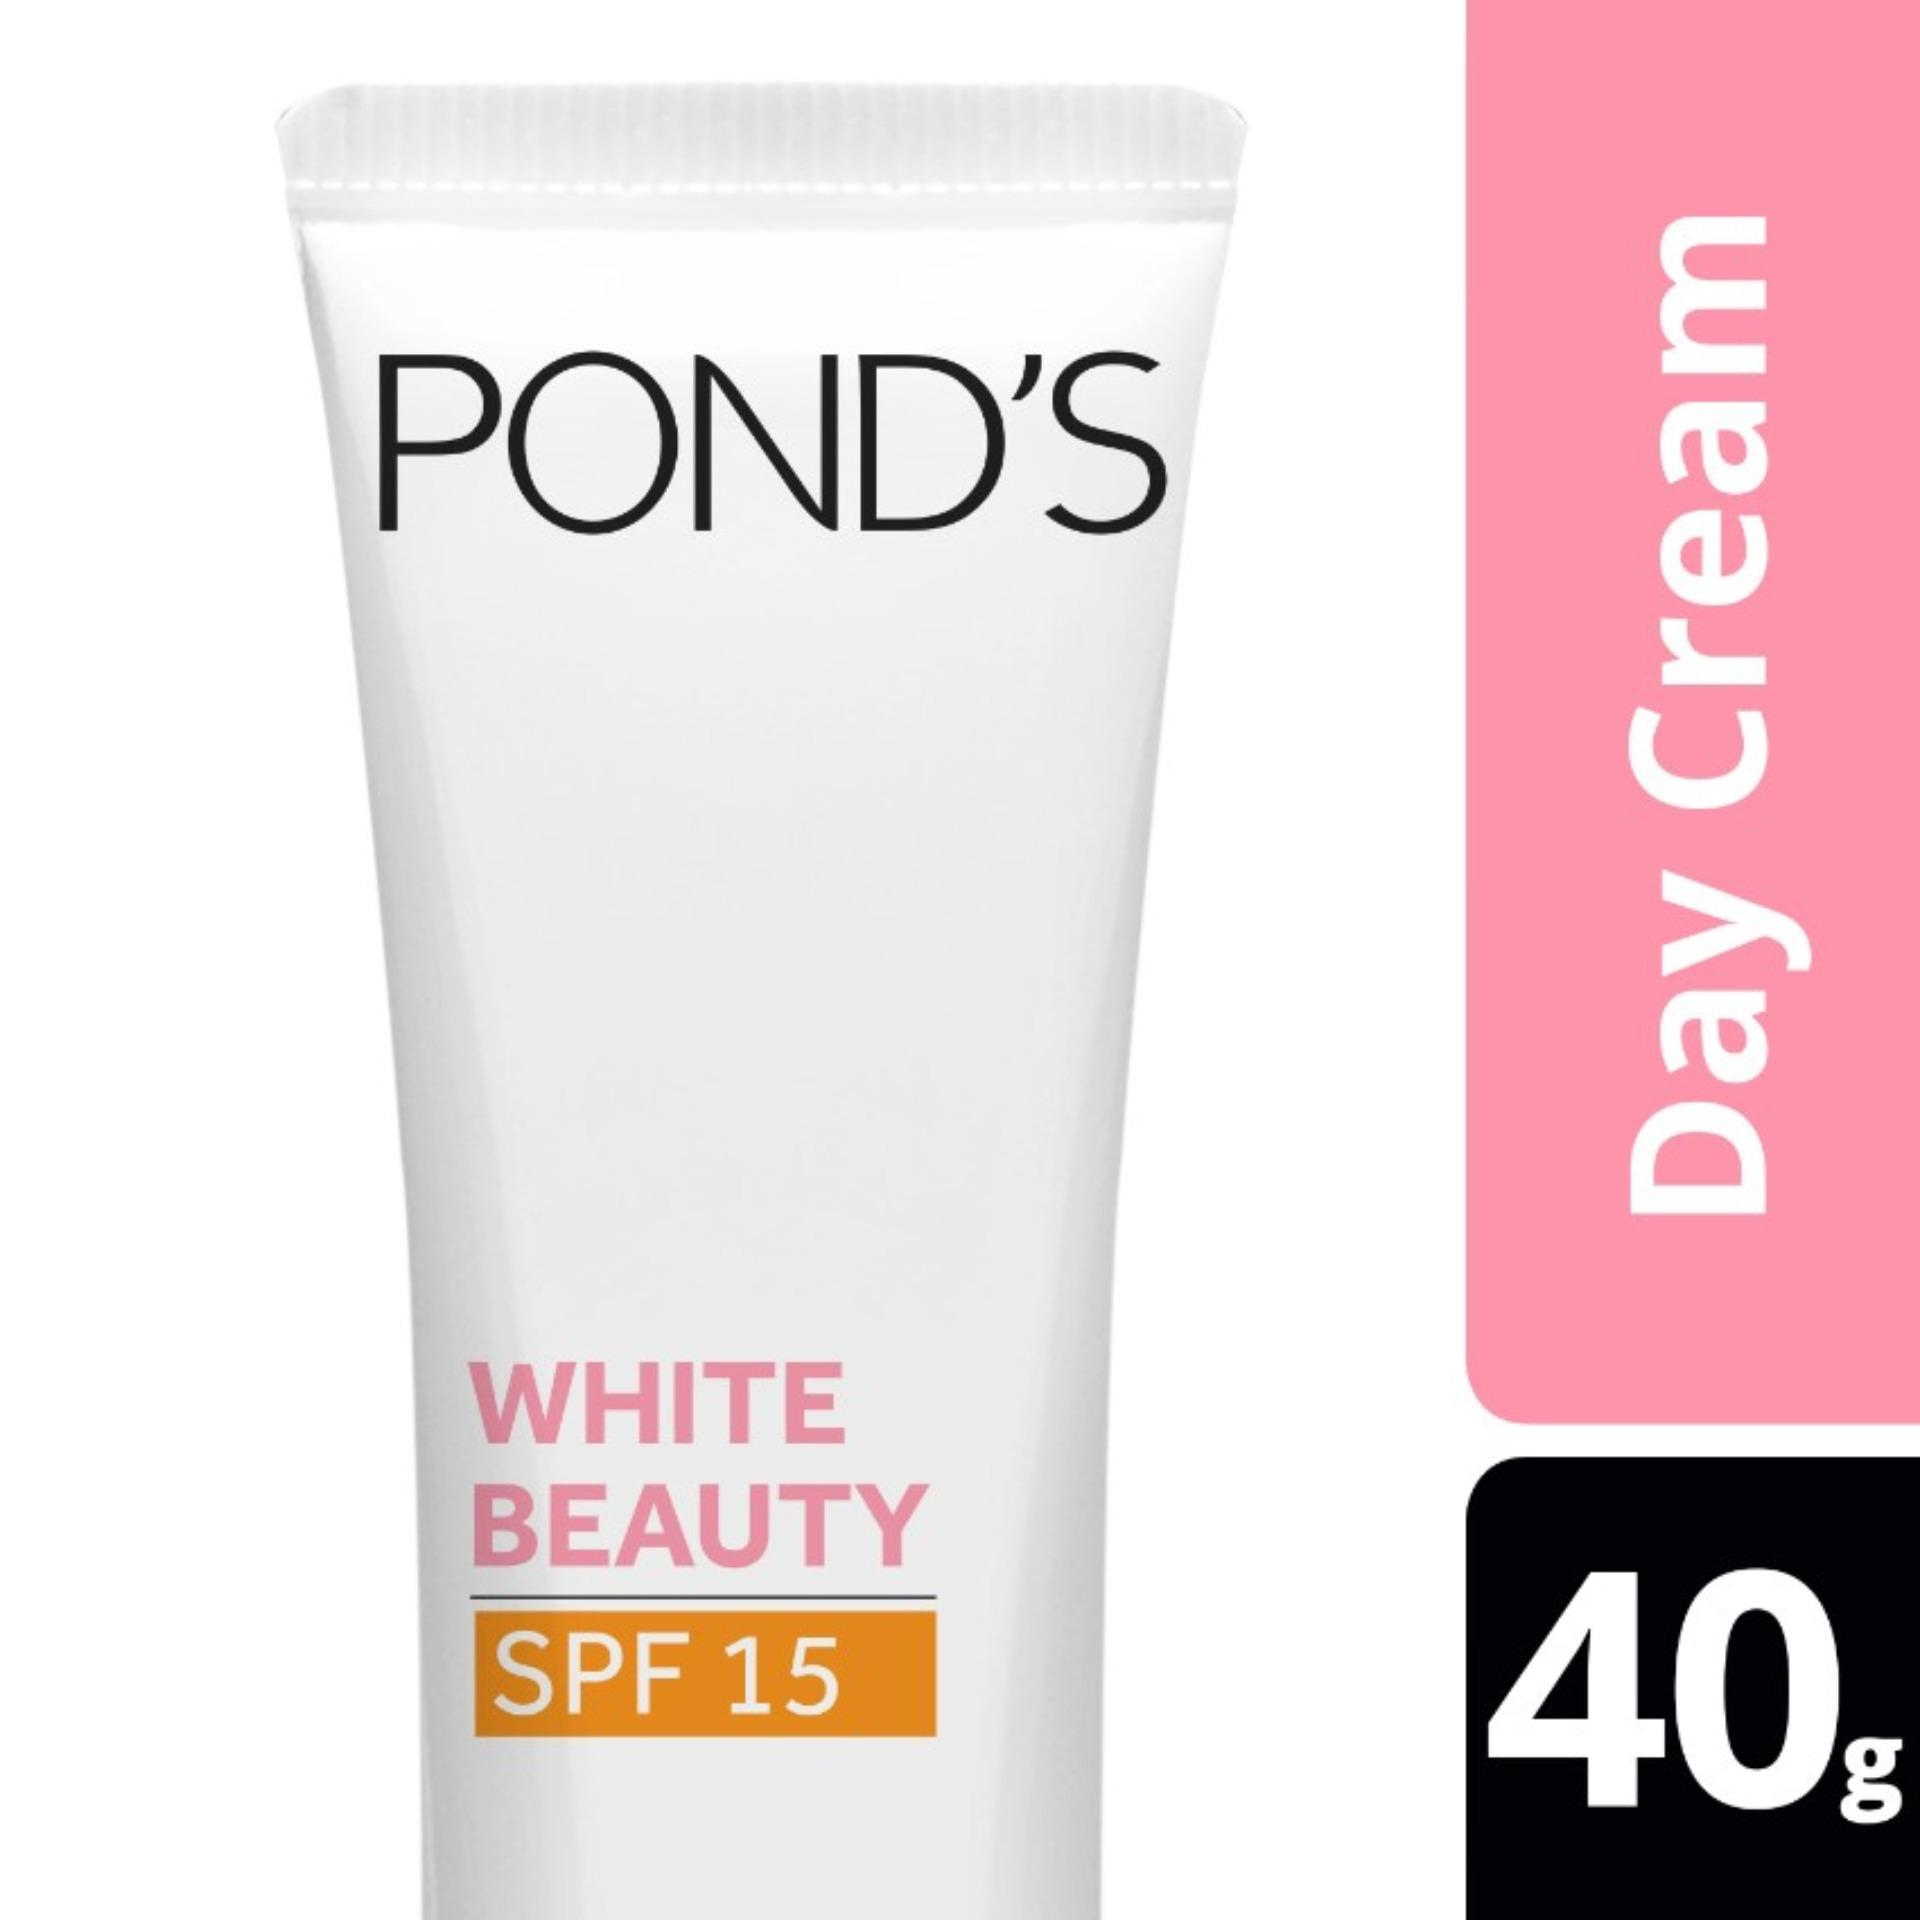 Ponds Philippines Price List Facial Wash Foam Scrub Flawles Night Cream White Beauty Day Spf15 40g